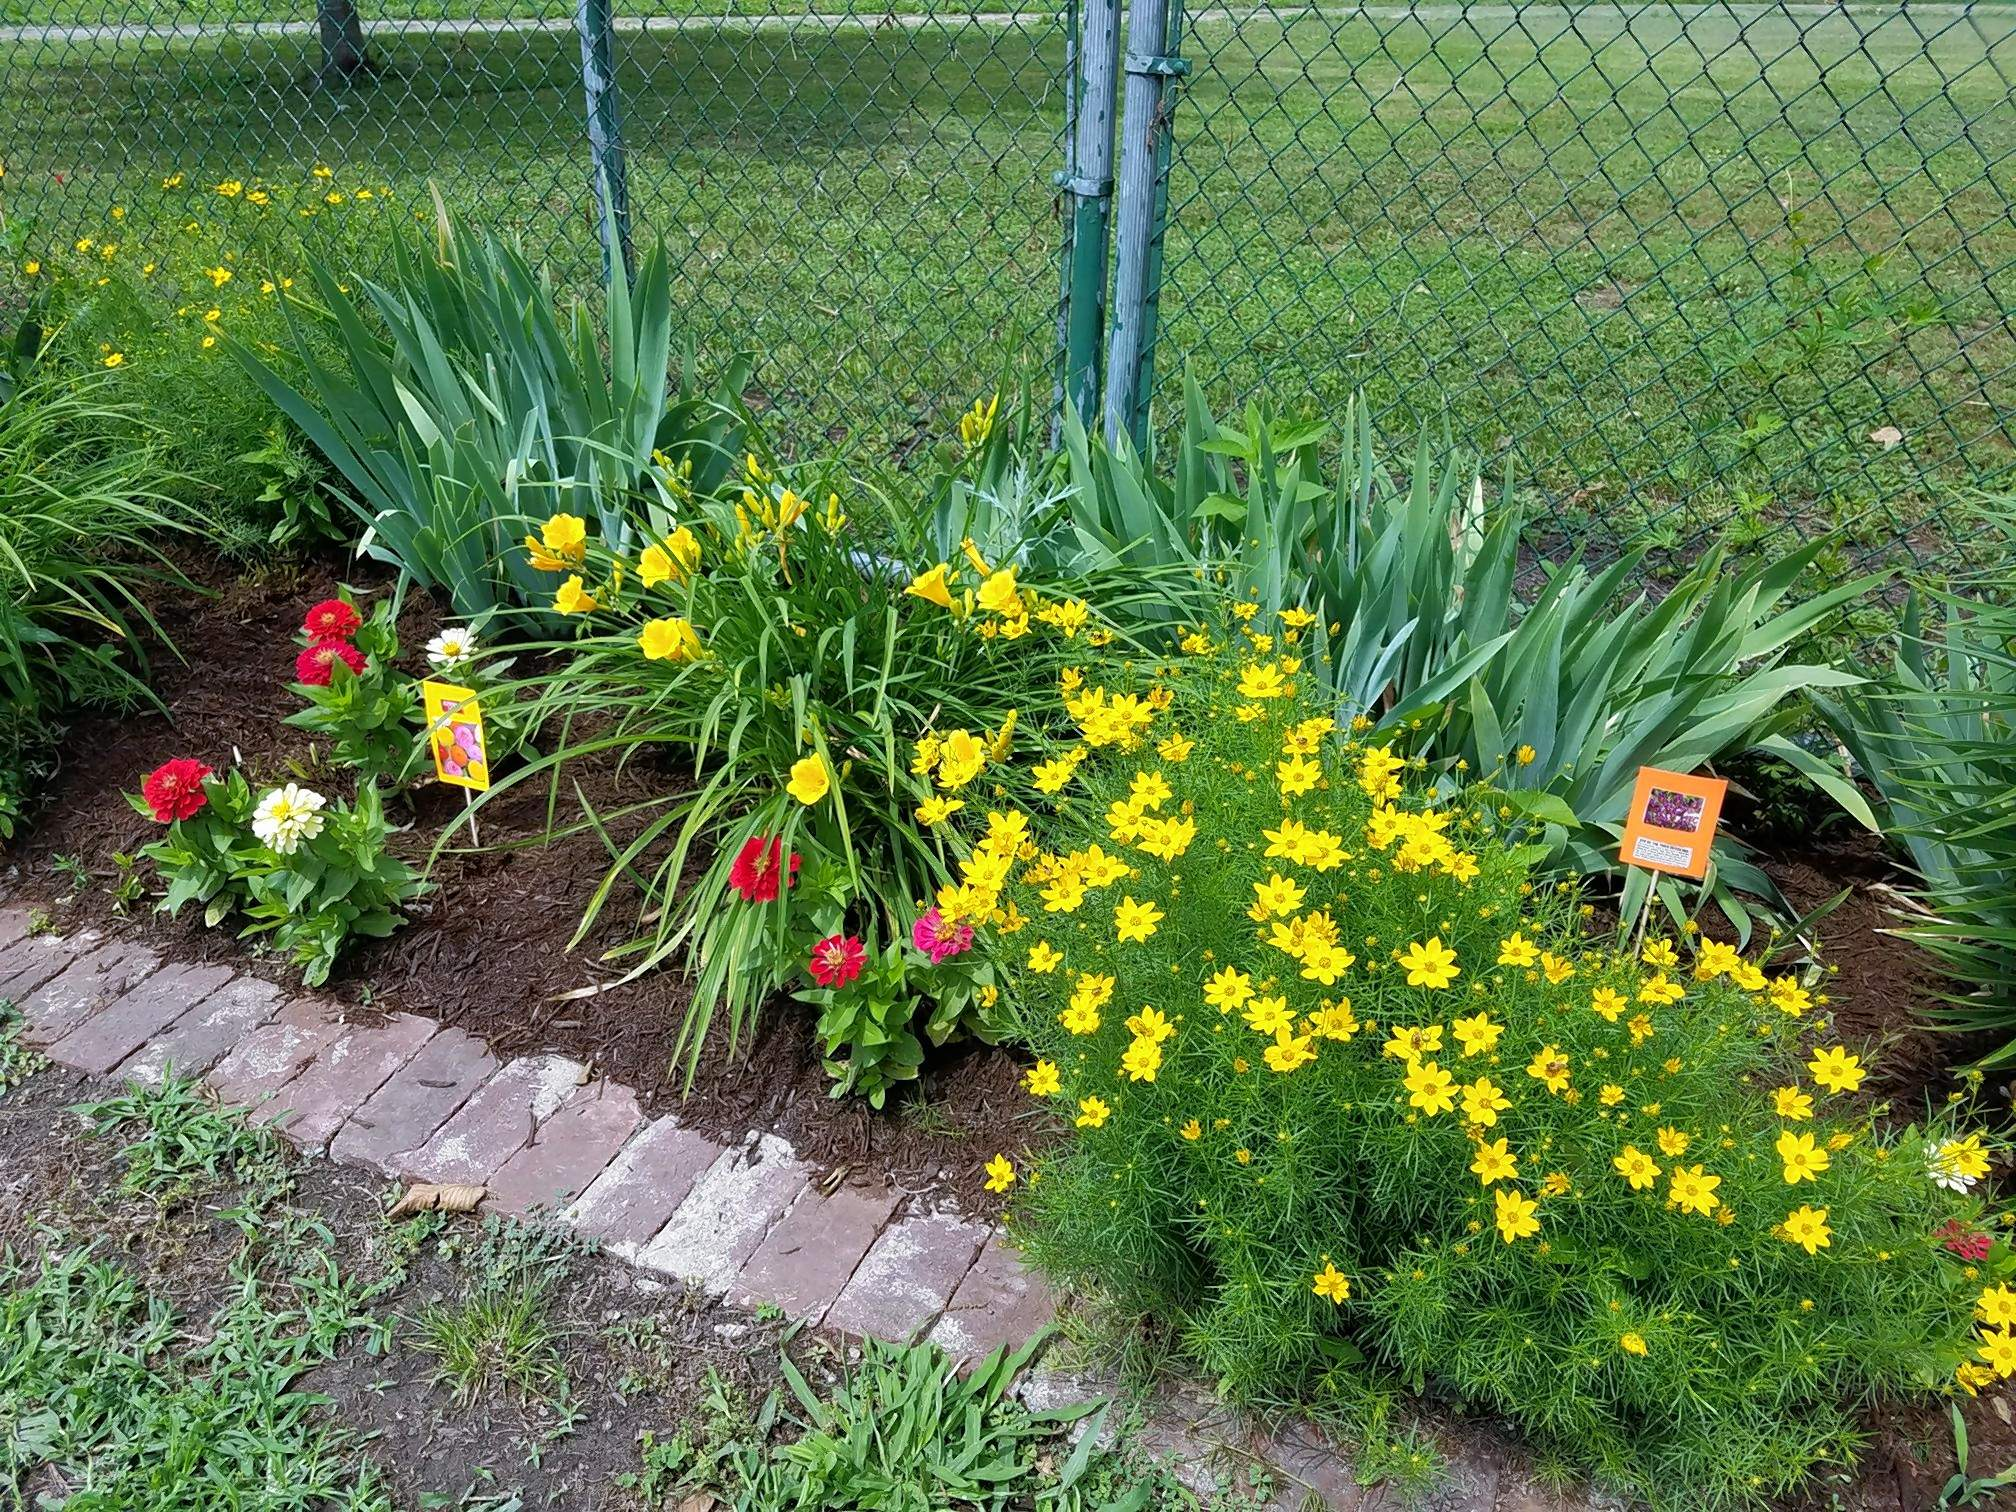 Some of the fine flowers and plants on display on North Division Street, courtesy of the Du Quoin Garden Club.